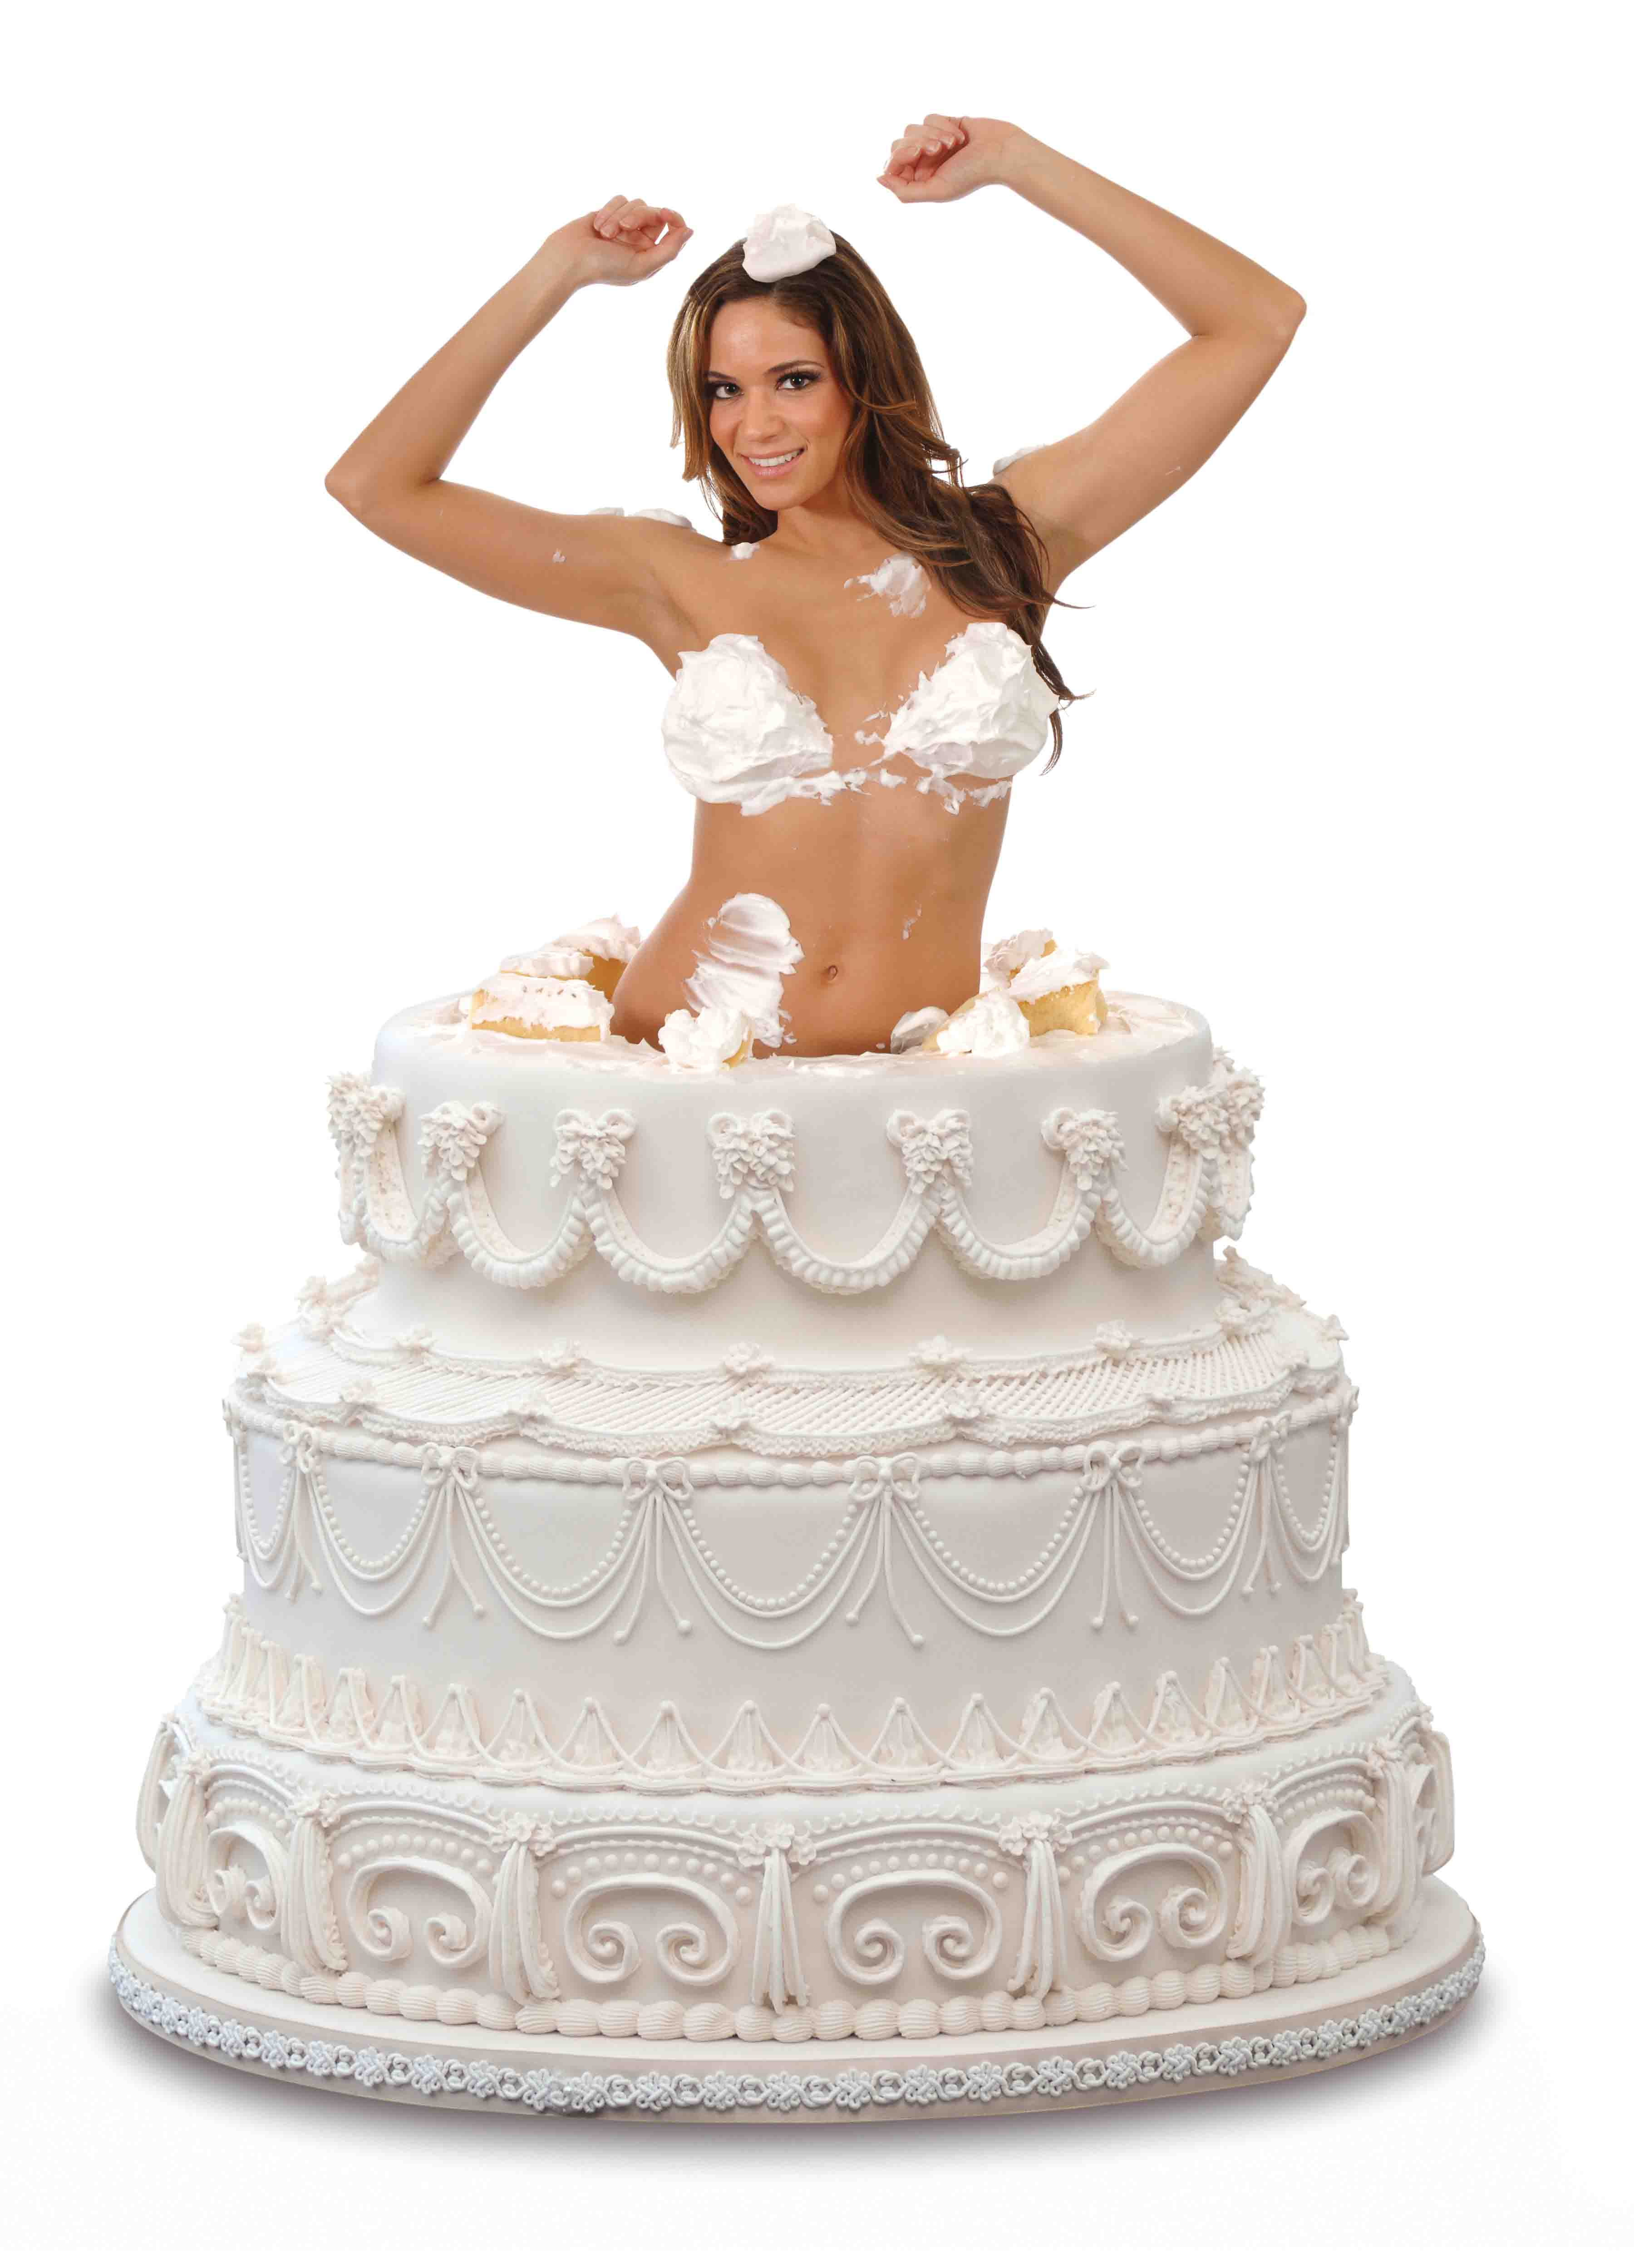 Naked happy birthday images, sexiest nude strippers